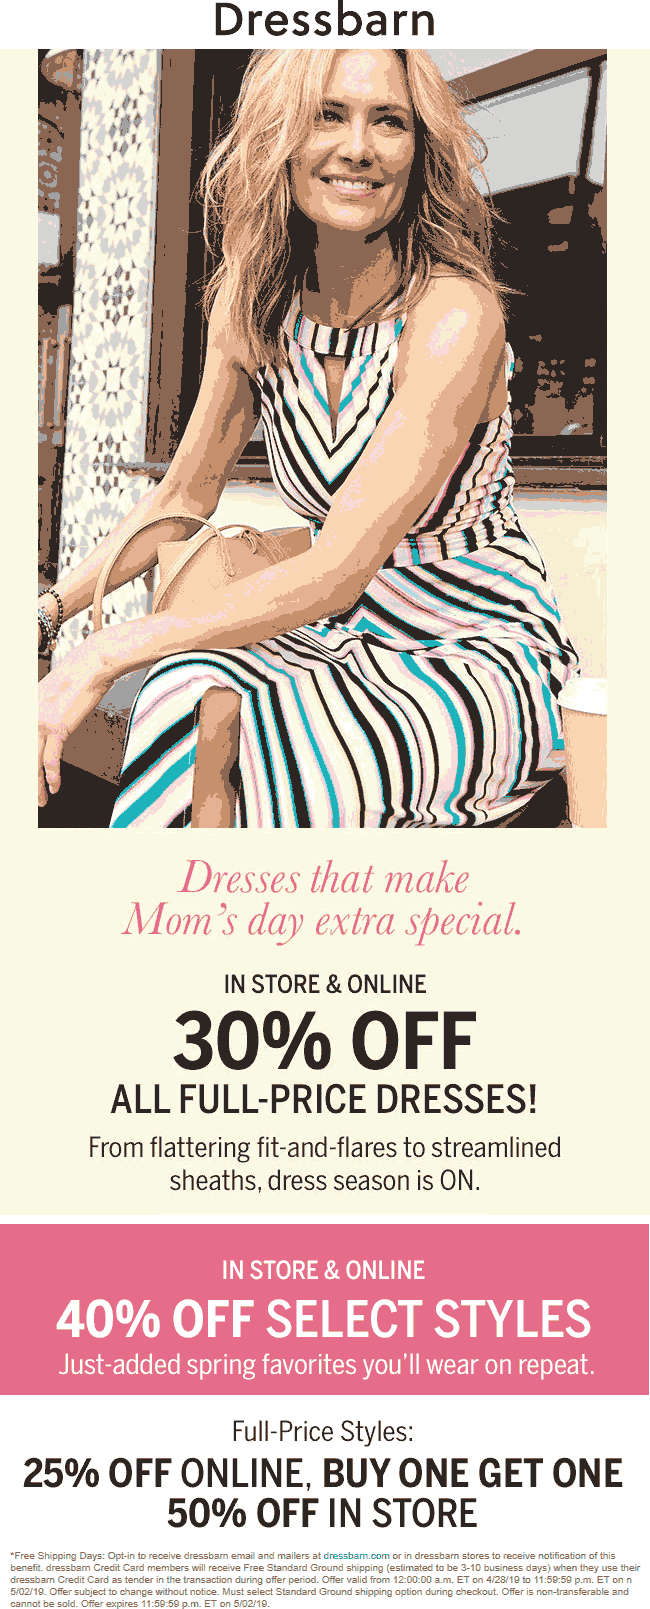 Dressbarn Coupon August 2019 30% off dresses & more at Dressbarn, ditto online